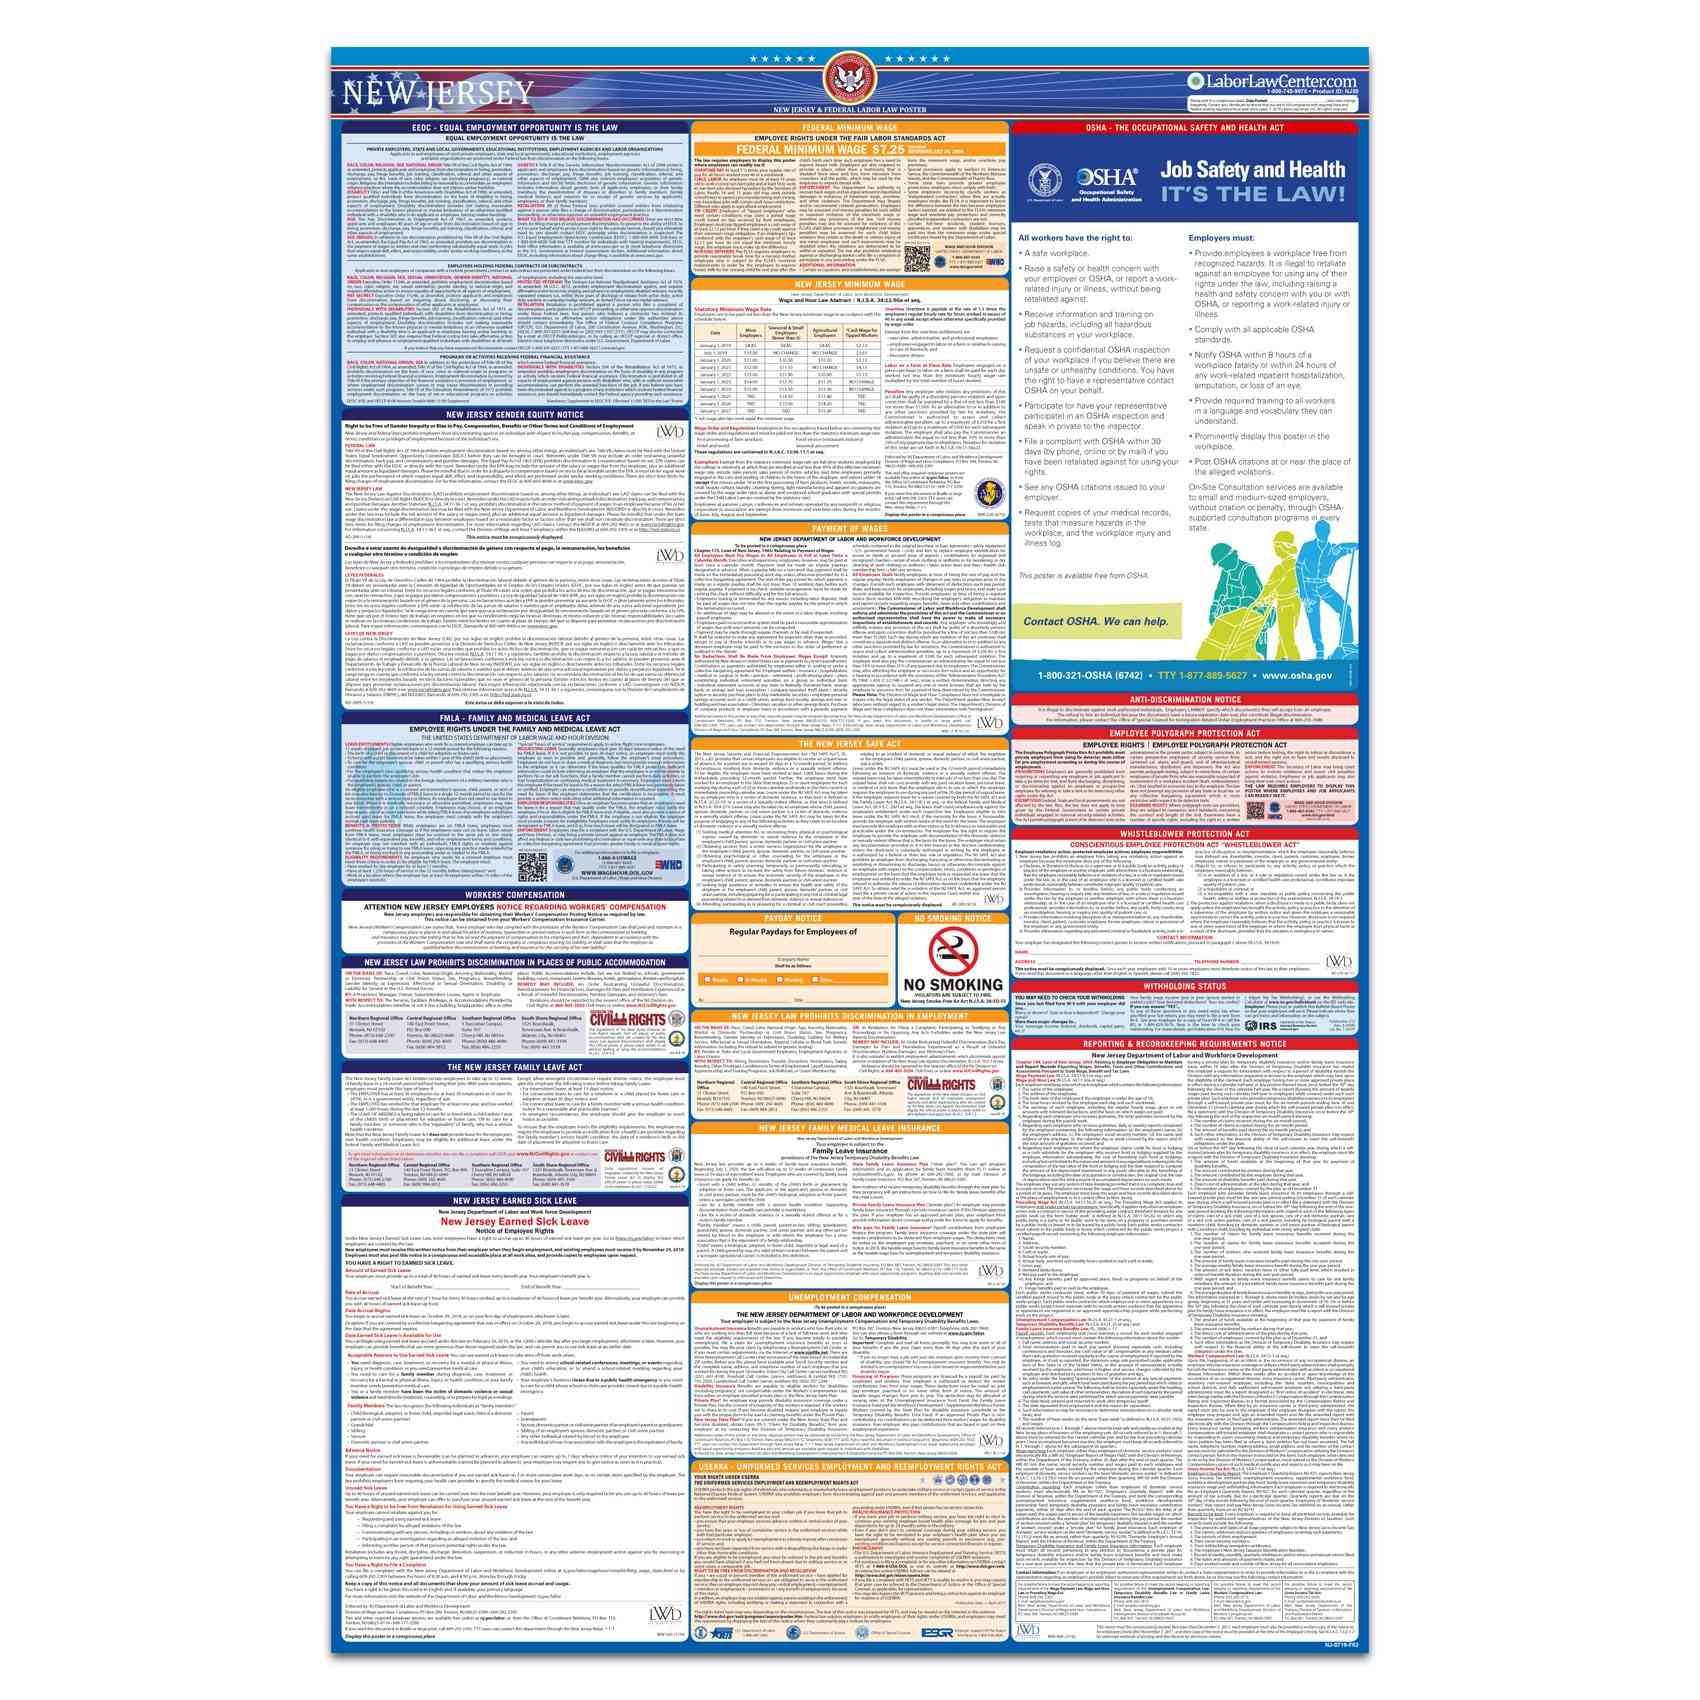 new jersey federal labor law poster 2021 replacement service